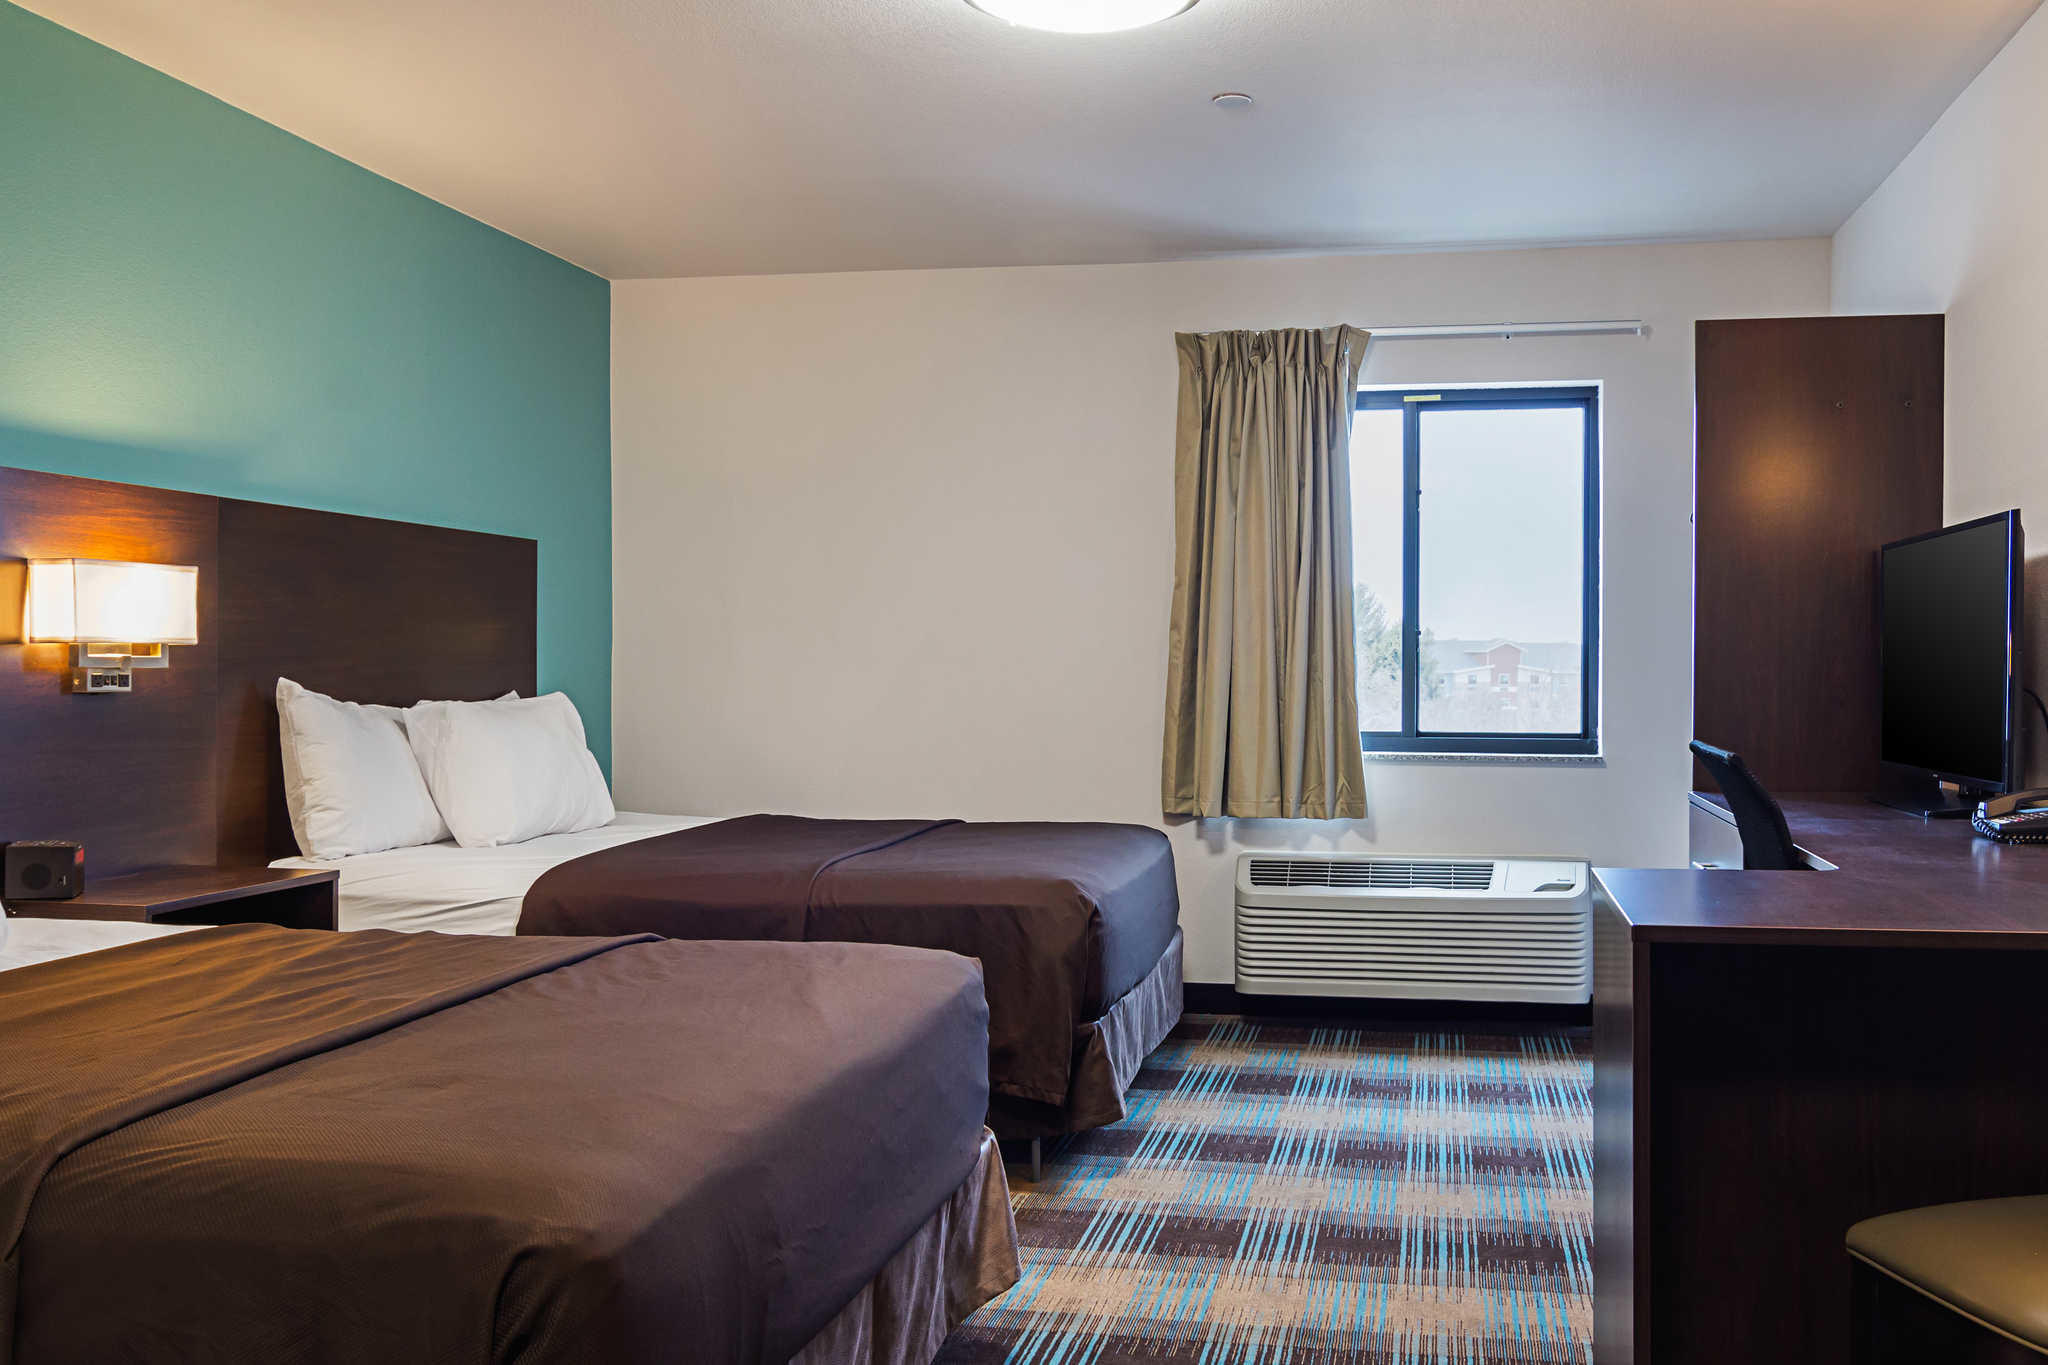 Suburban Extended Stay Hotel image 35